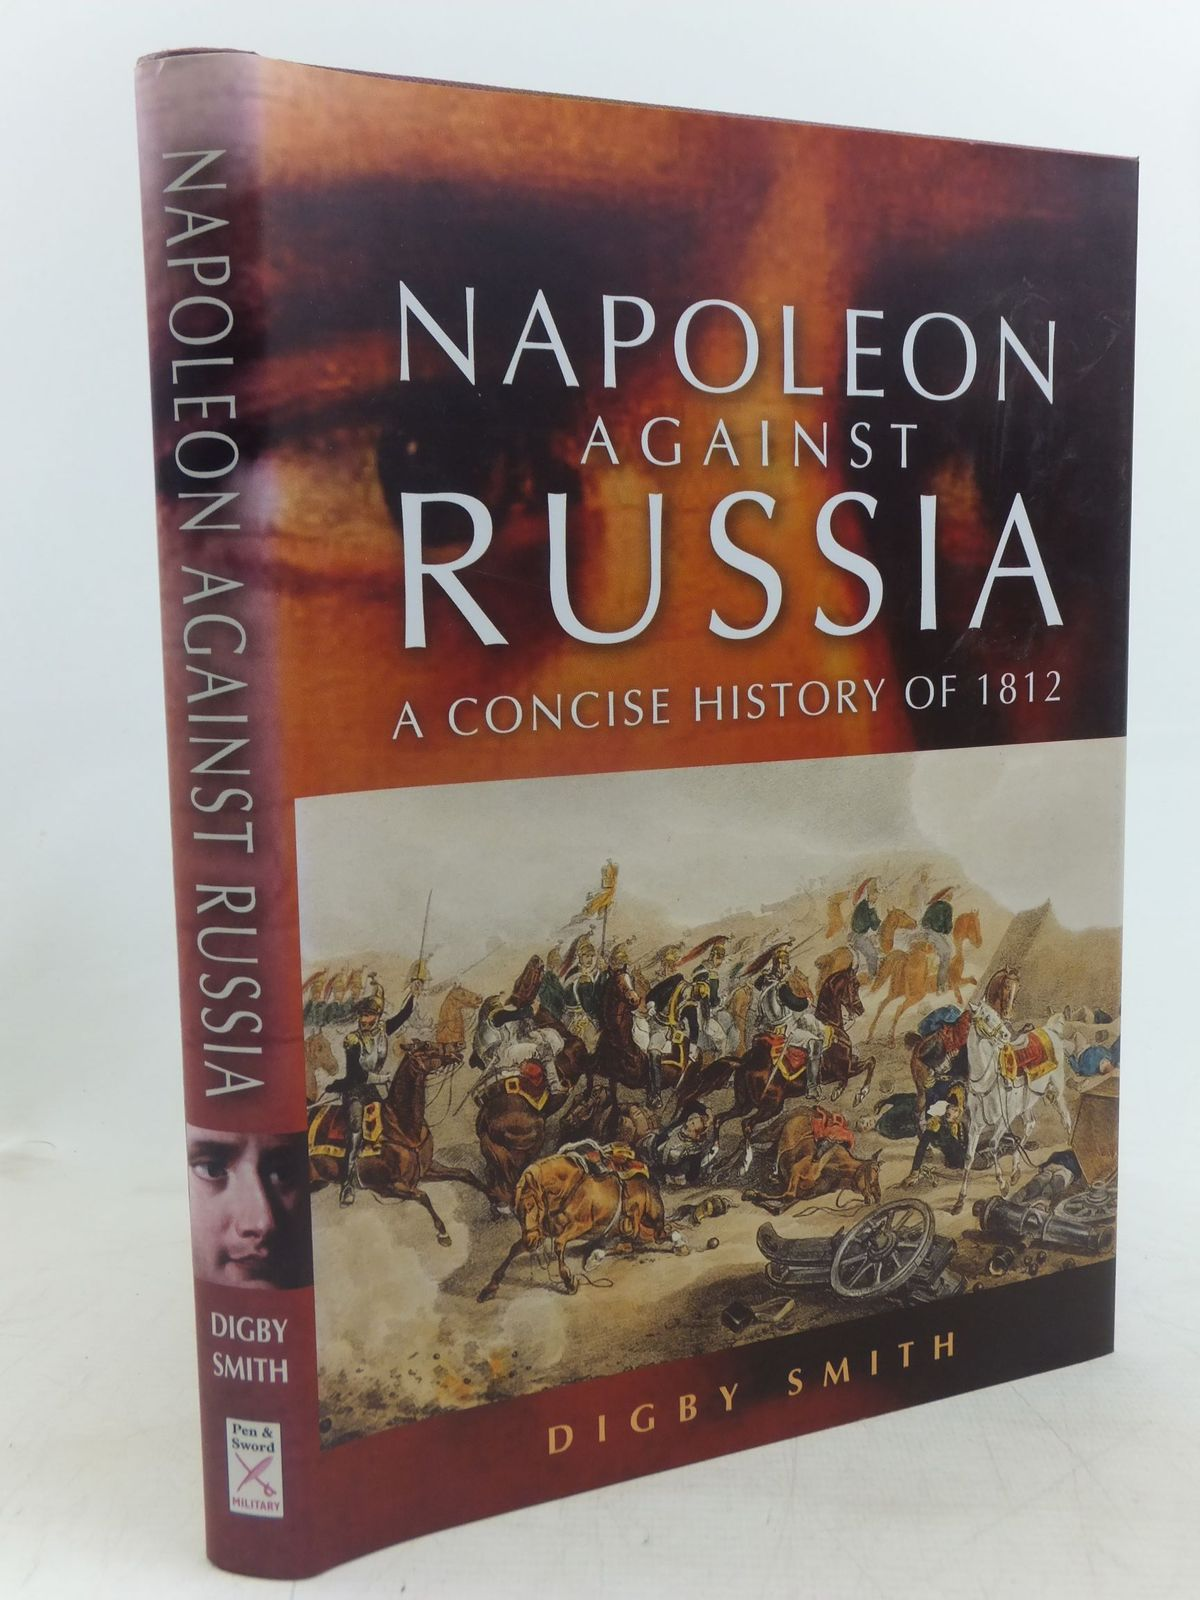 Photo of NAPOLEON AGAINST RUSSIA: A CONCISE HISTORY OF 1812 written by Smith, Digby published by Pen & Sword Military (STOCK CODE: 1712619)  for sale by Stella & Rose's Books